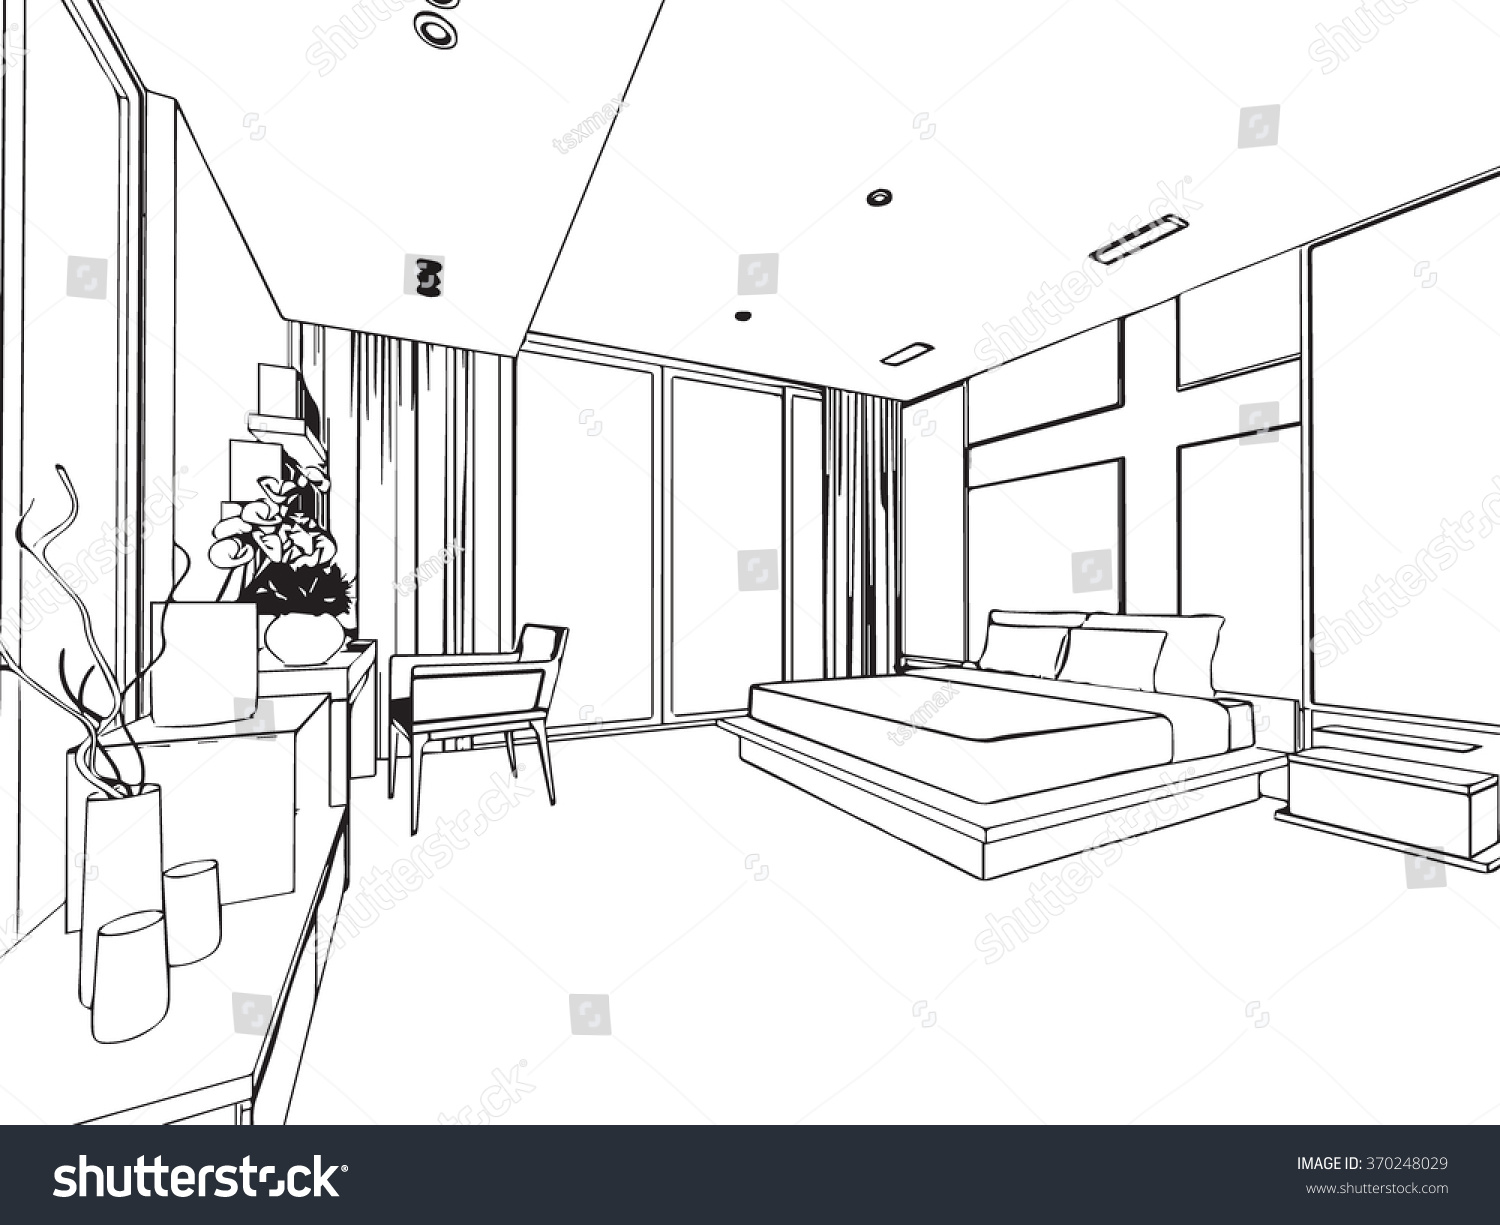 Outline sketch drawing perspective interior space stock for Living room outline